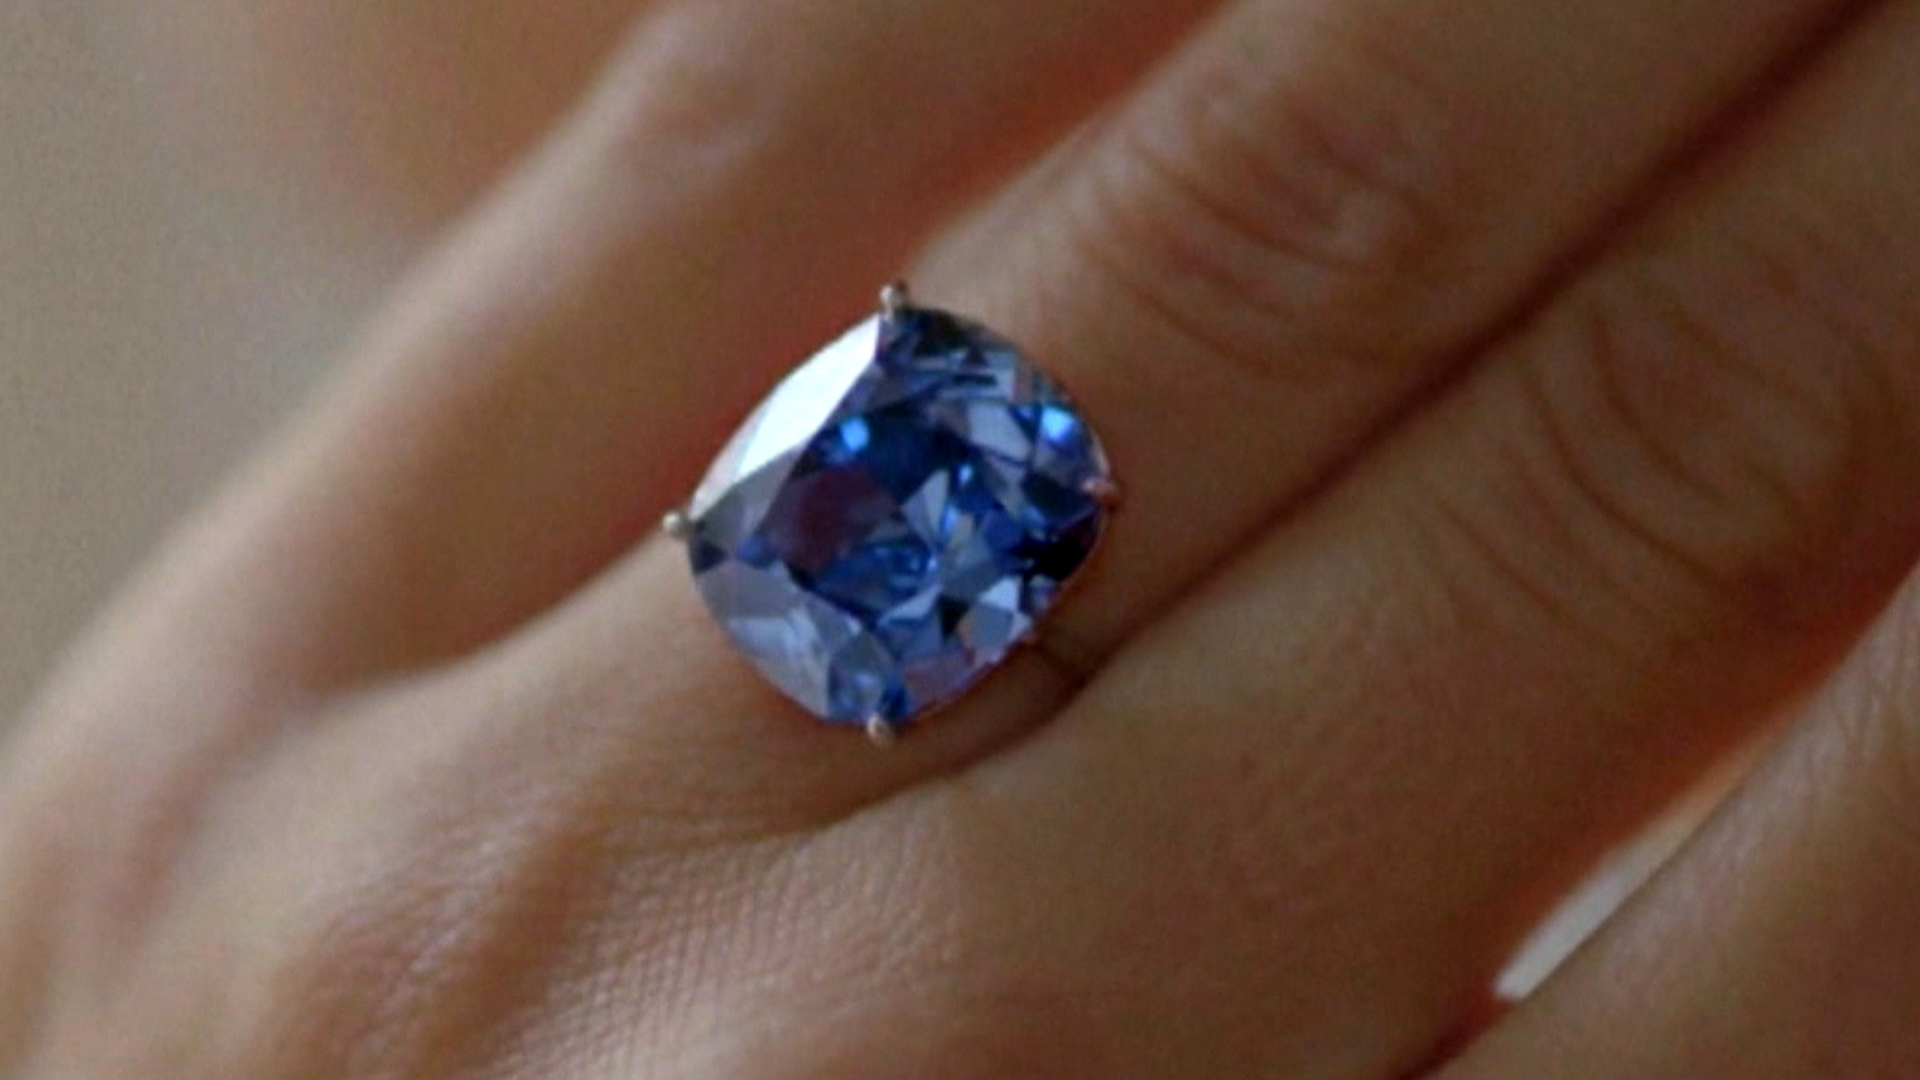 kee and flawless carats carat chee fancy vivid cushion ever blue sothebys largest moon the clarity sotheby hua to sapphire at s shaped live auction internally with is appear diamond